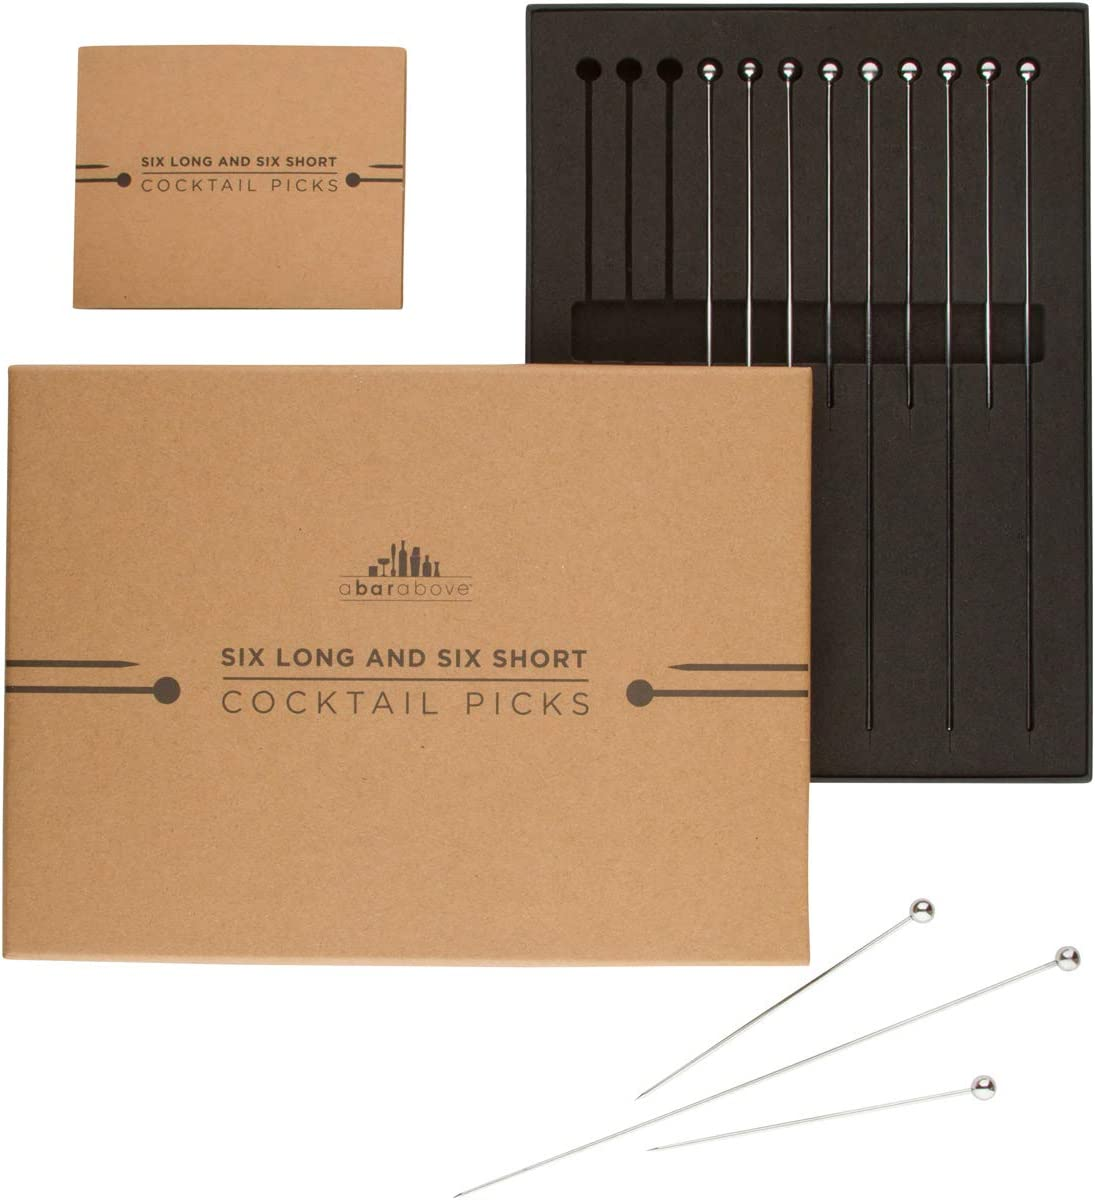 Stainless Steel Cocktail Picks Combo Pack - (6pc of each 4